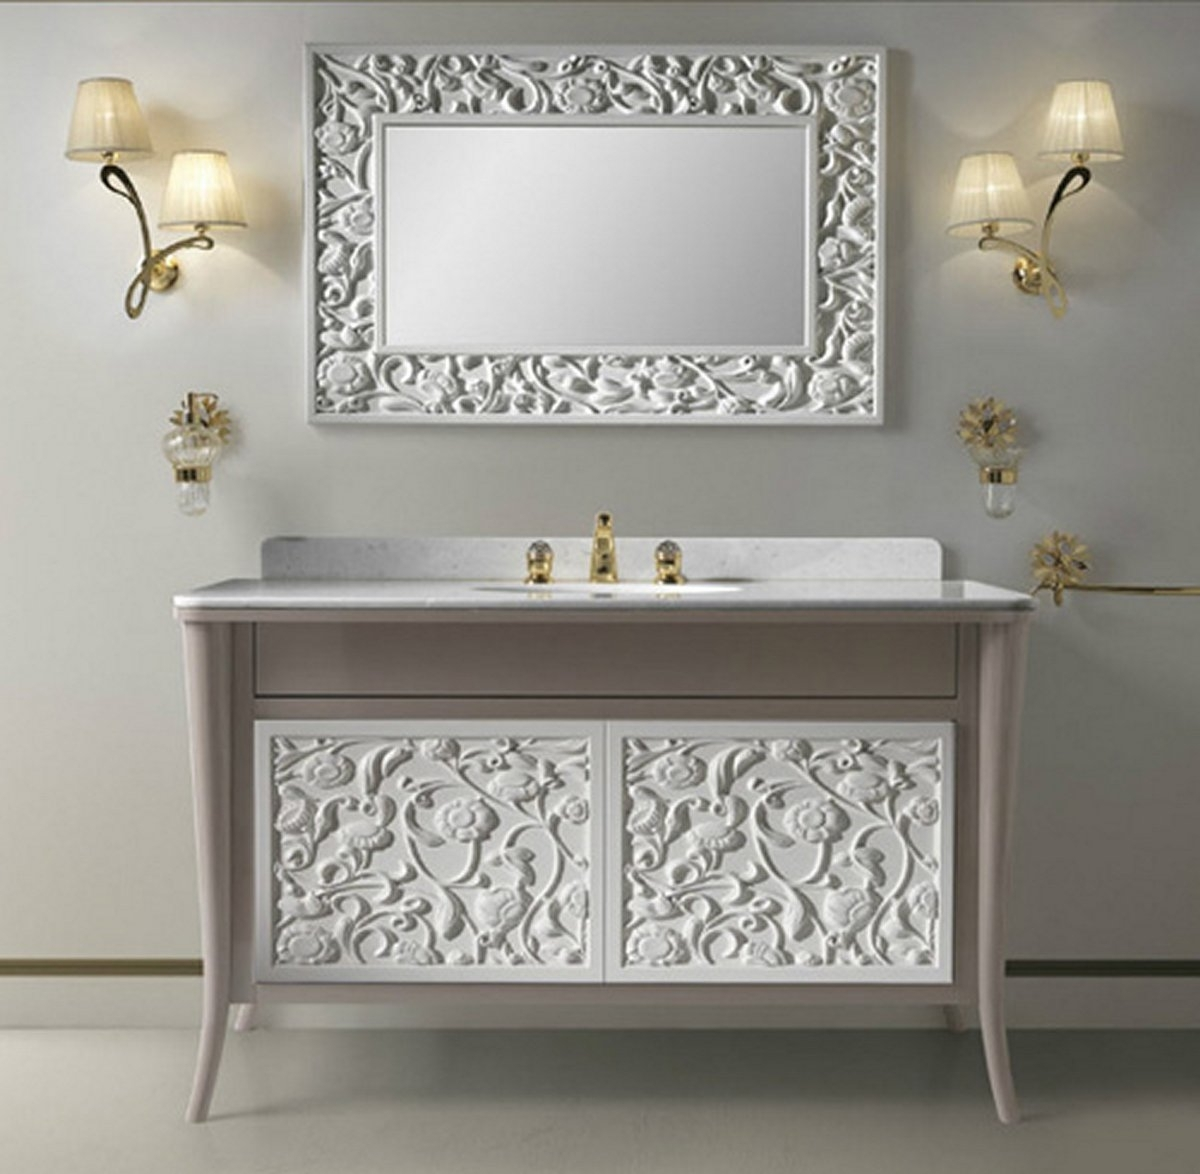 Vintage Bathroom Mirrors Home Decor Vintage Style Bathroom Regarding Vintage Style Bathroom Mirrors (Image 13 of 15)